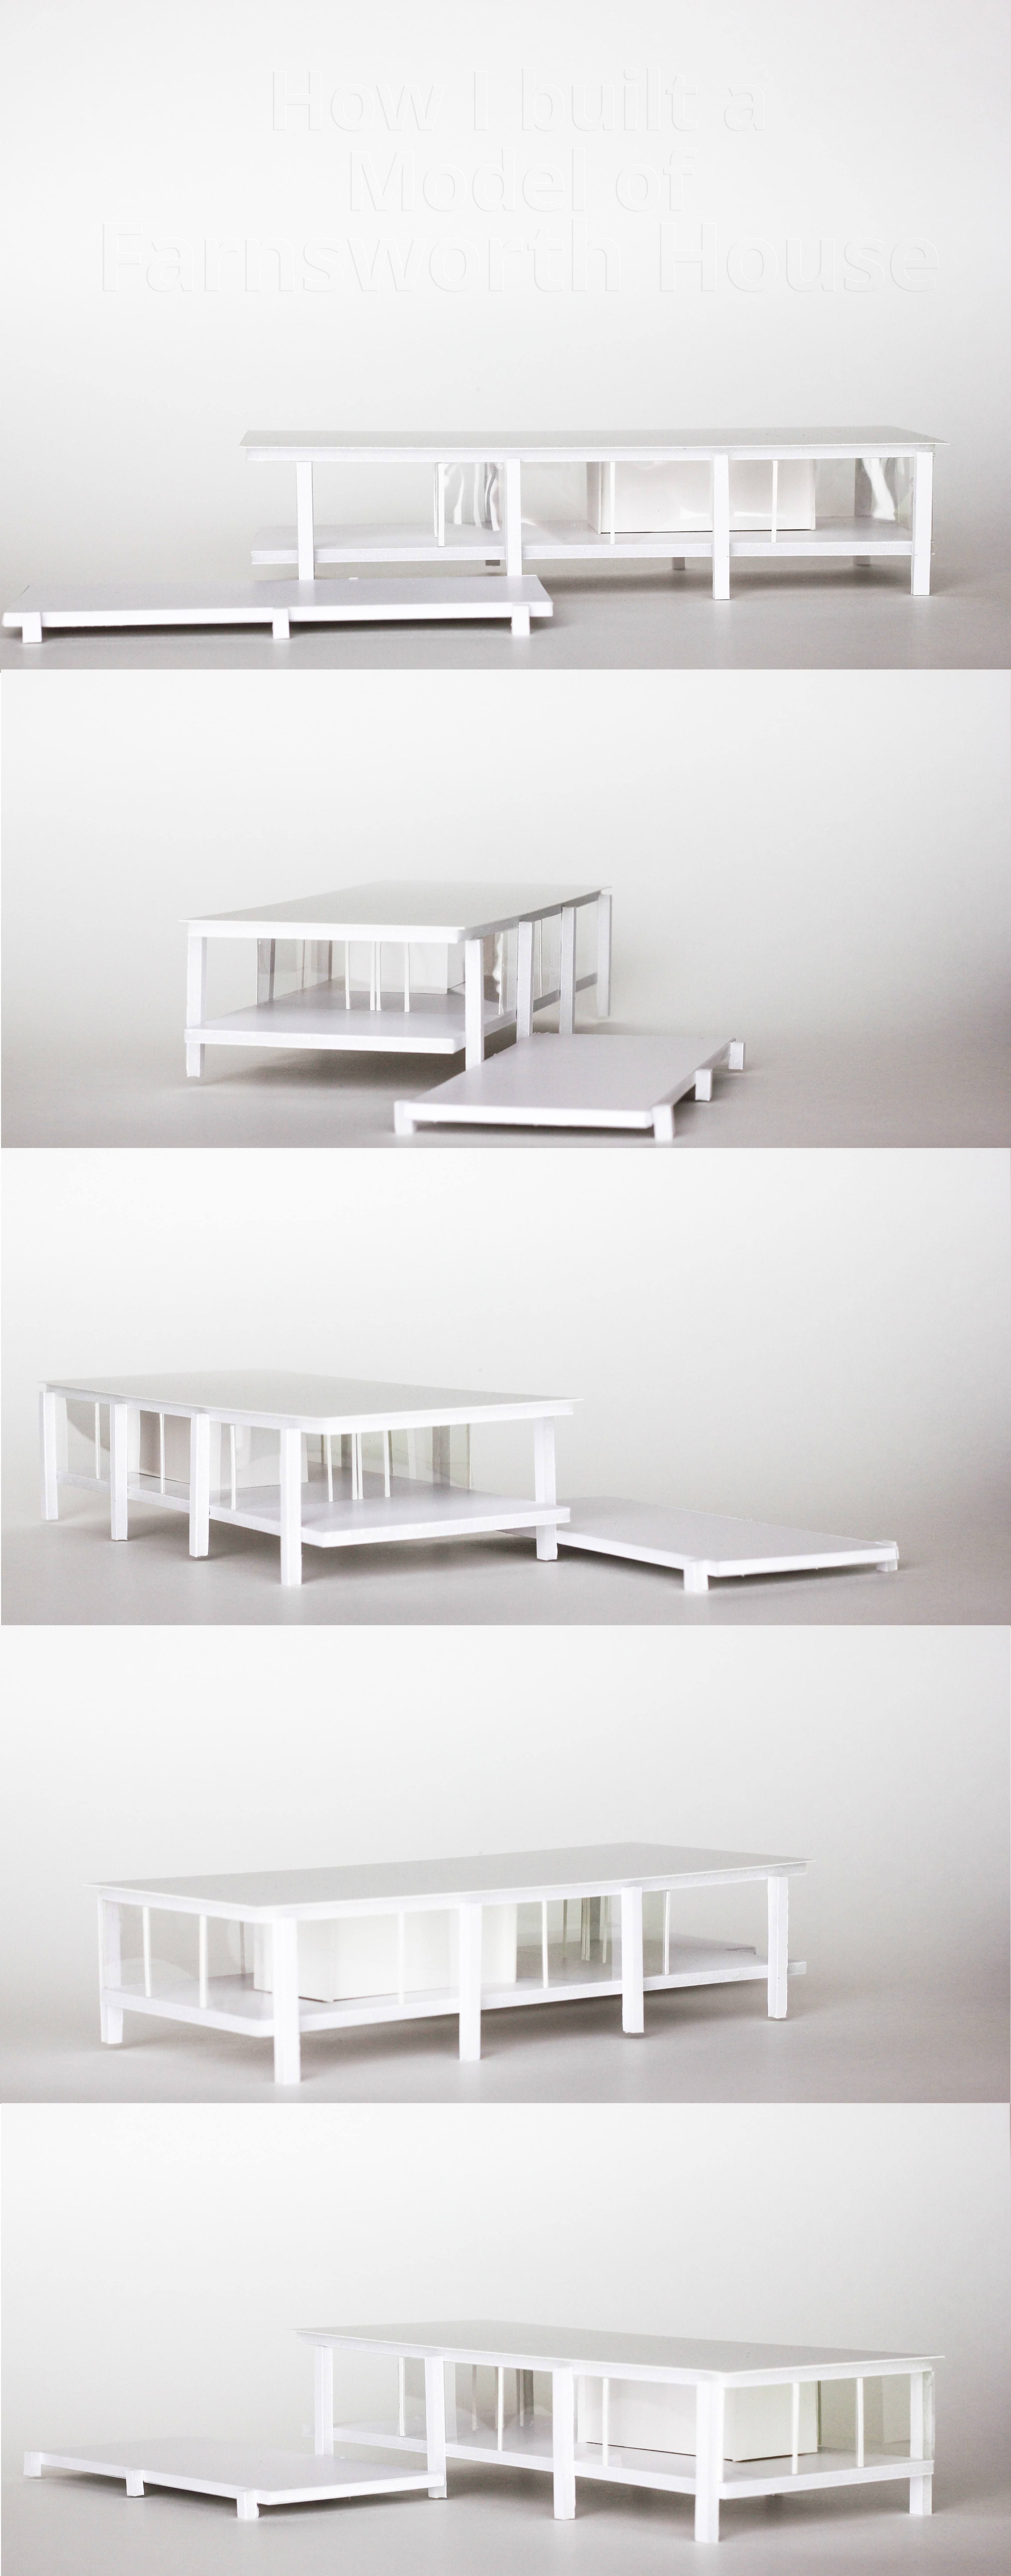 How I Built a Model of Farnsworth HouseModern architectural model